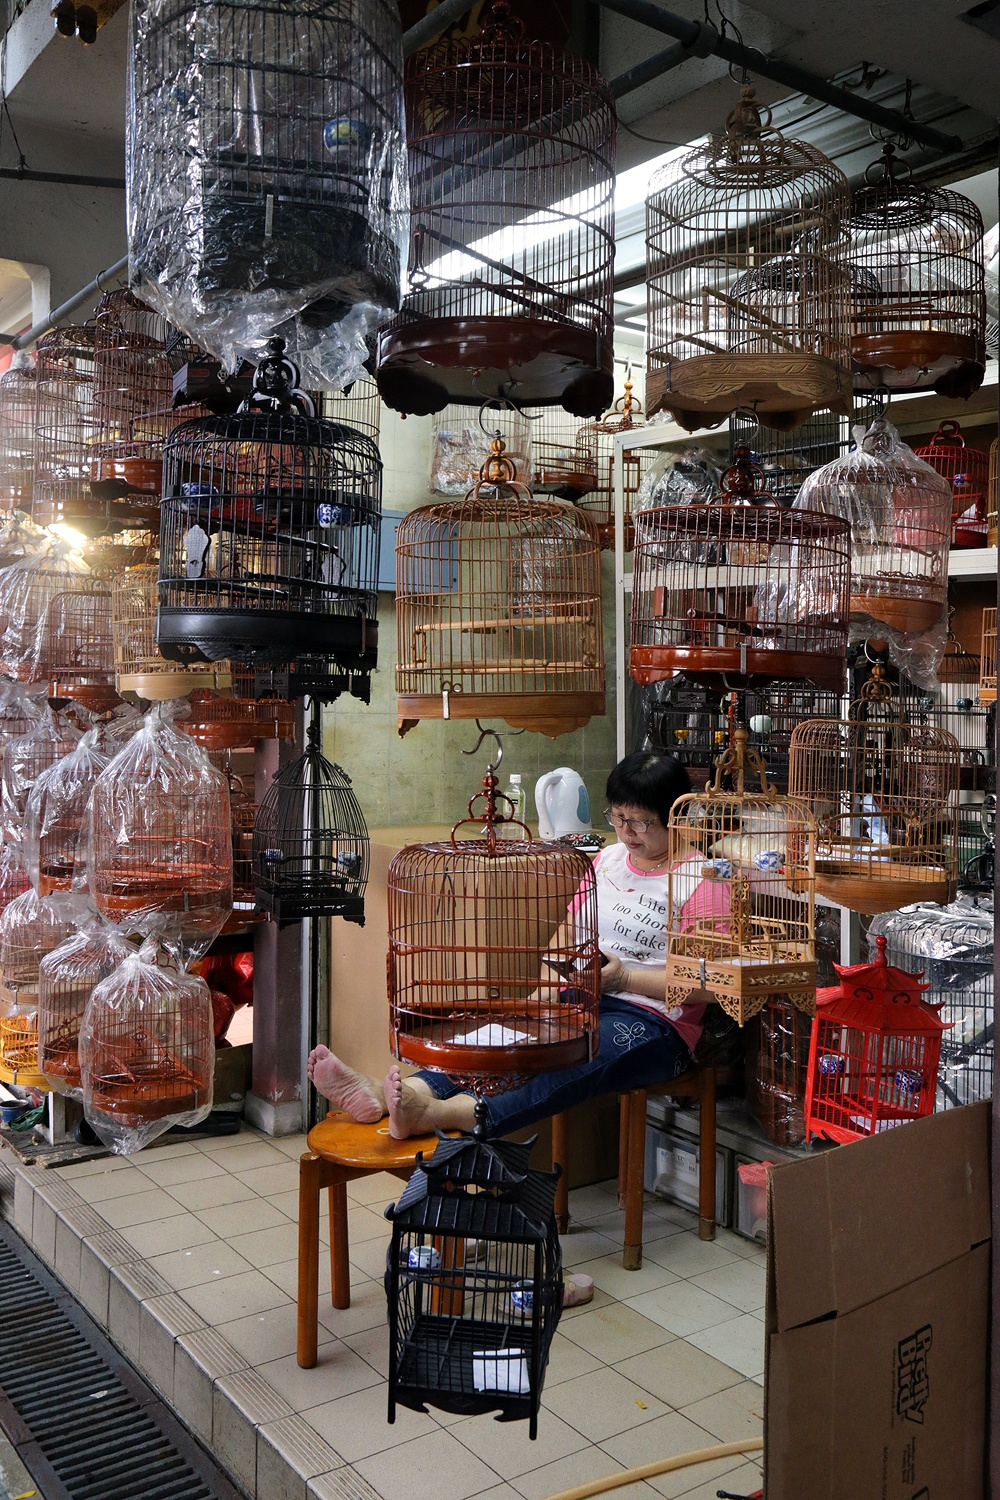 17-birdcages Bird Market, 